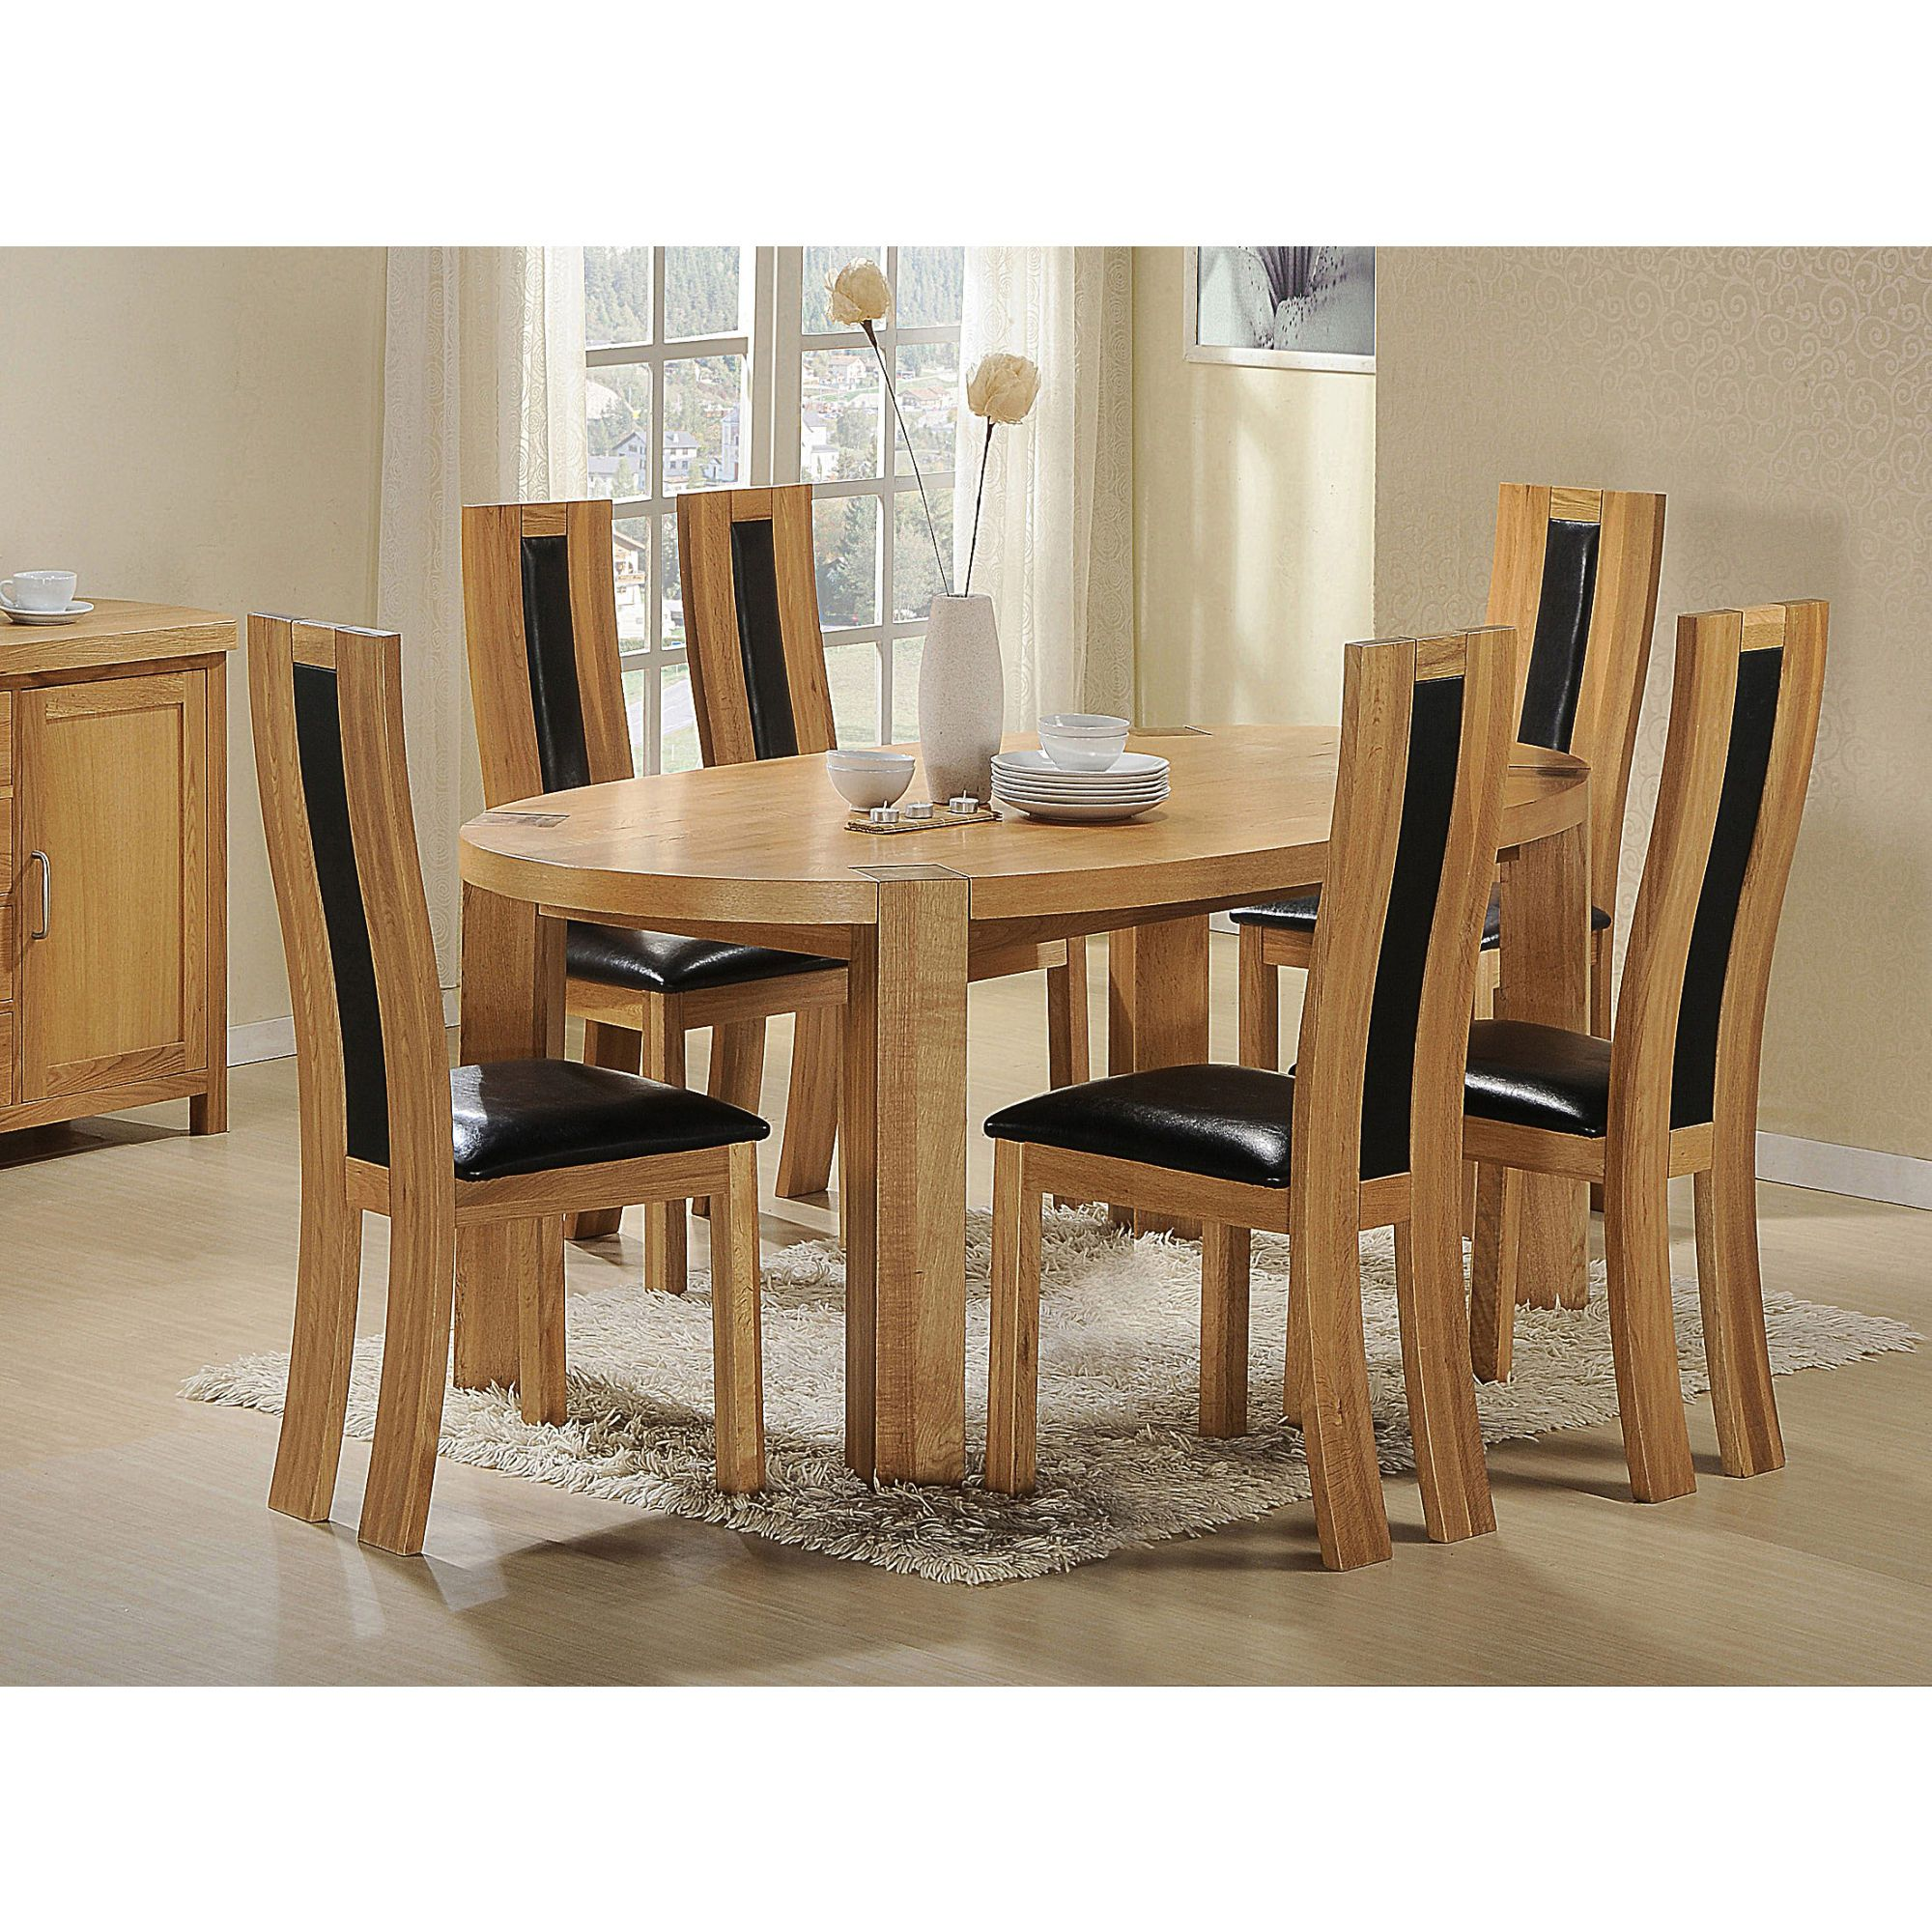 Heartlands Zeus Solid Oak Oval 7 Piece Dining Set at Tesco Direct